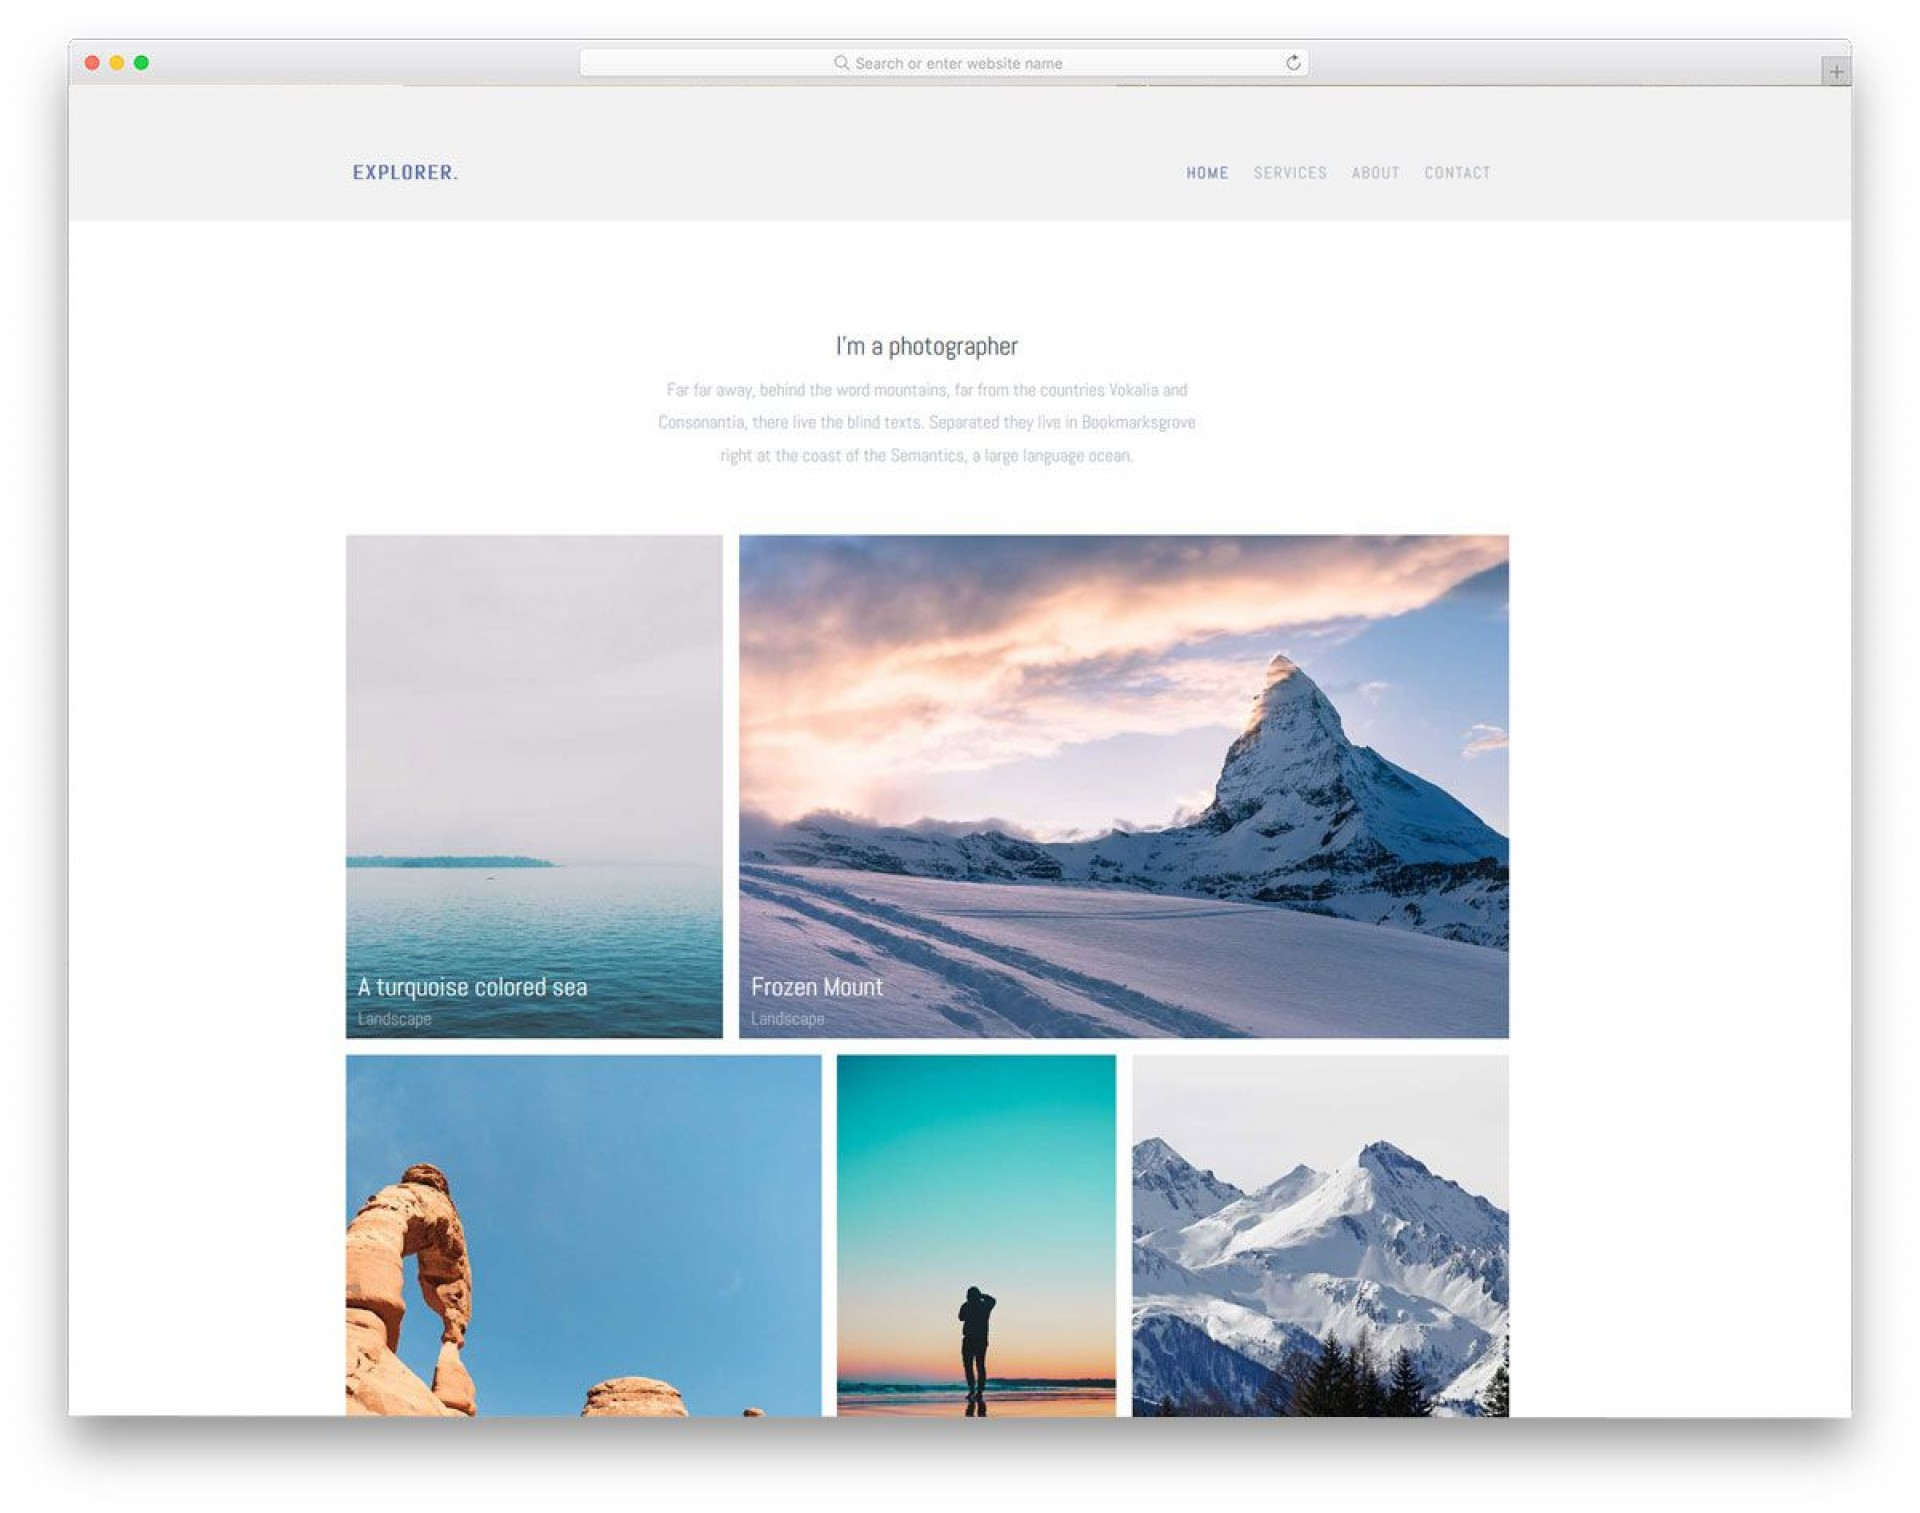 004 Wonderful Simple Web Page Template Photo  Html Website Free Download In Design Using And Cs1920